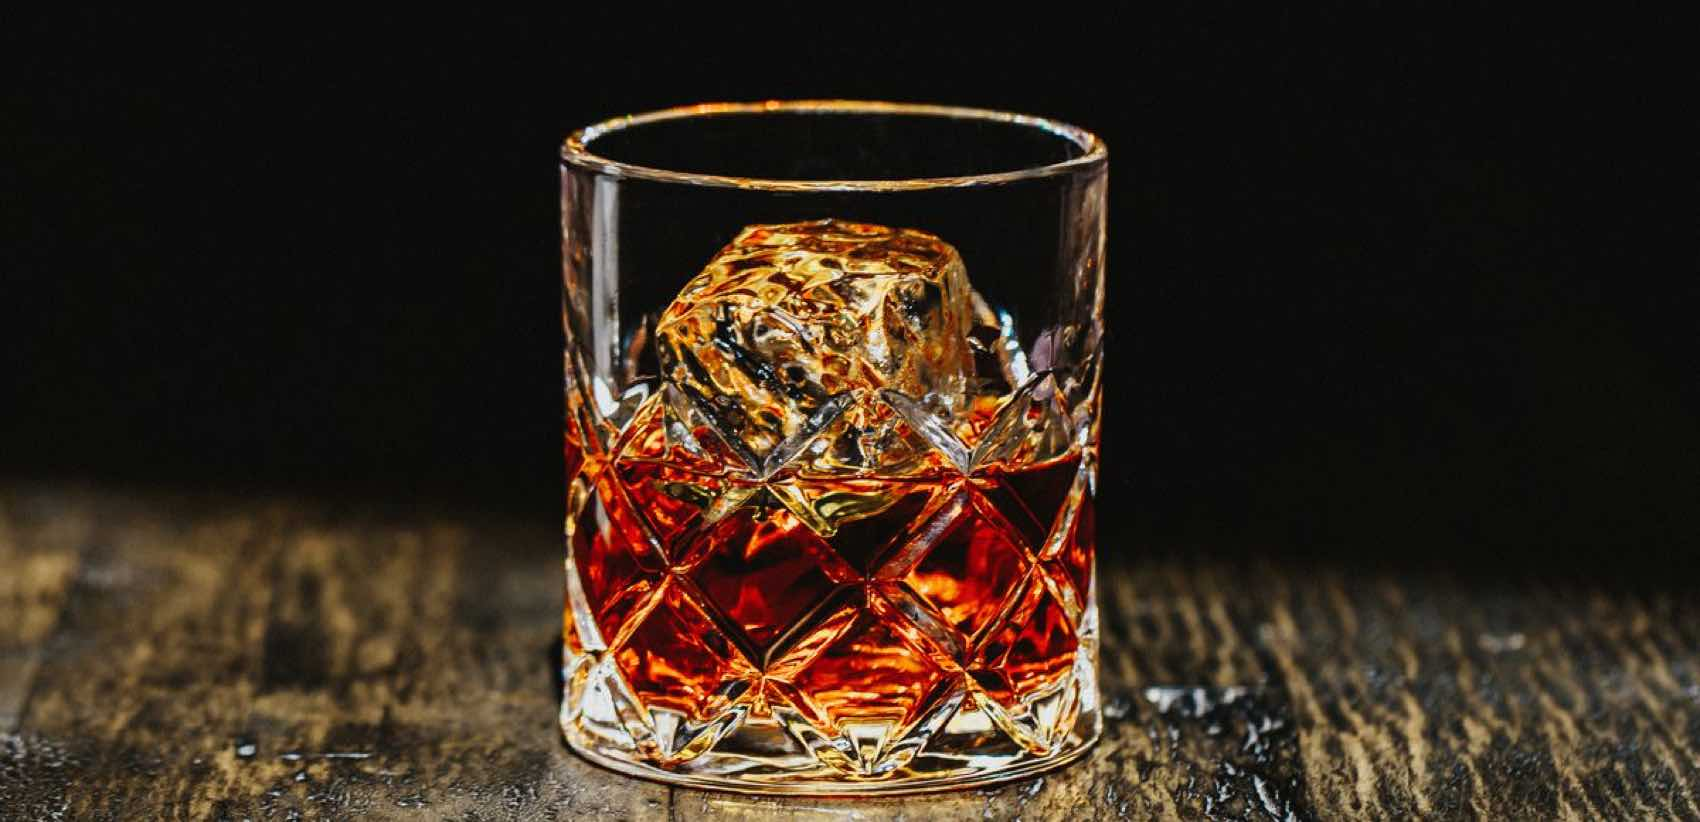 French Connestion: The cognac adds warmth to the chilled drink